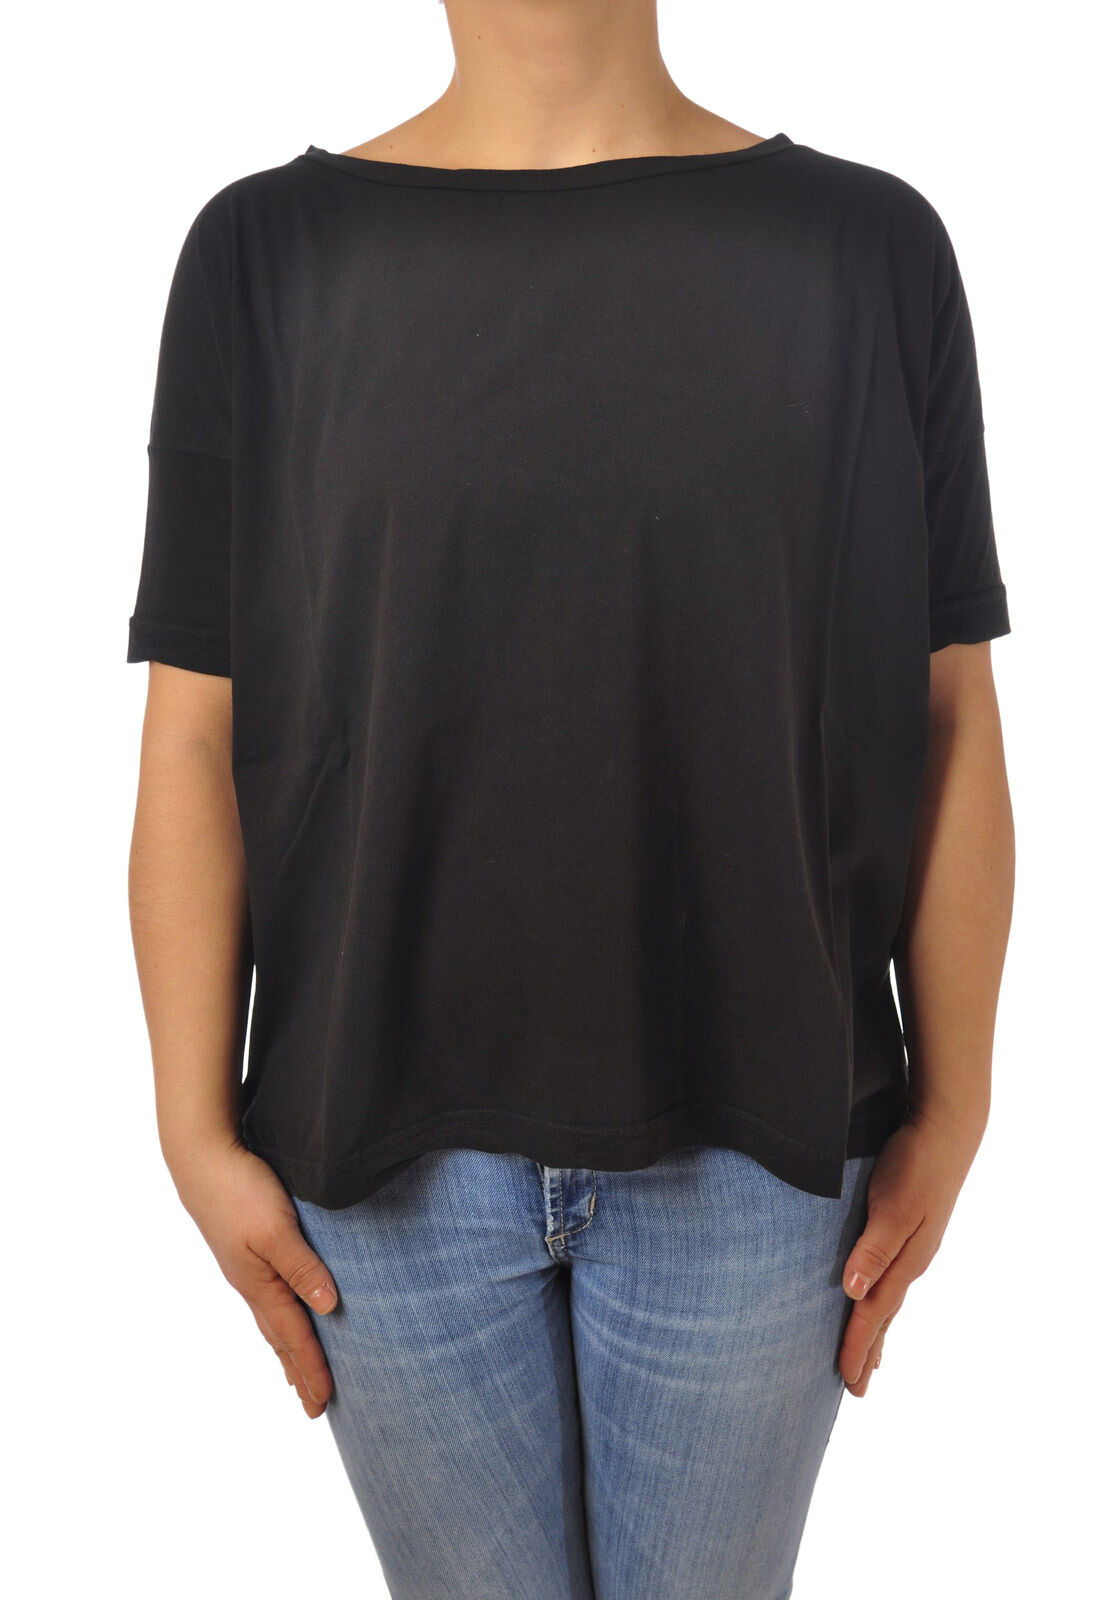 CROSSLEY - Topwear-T-shirts - Woman - schwarz - 5076010H181525